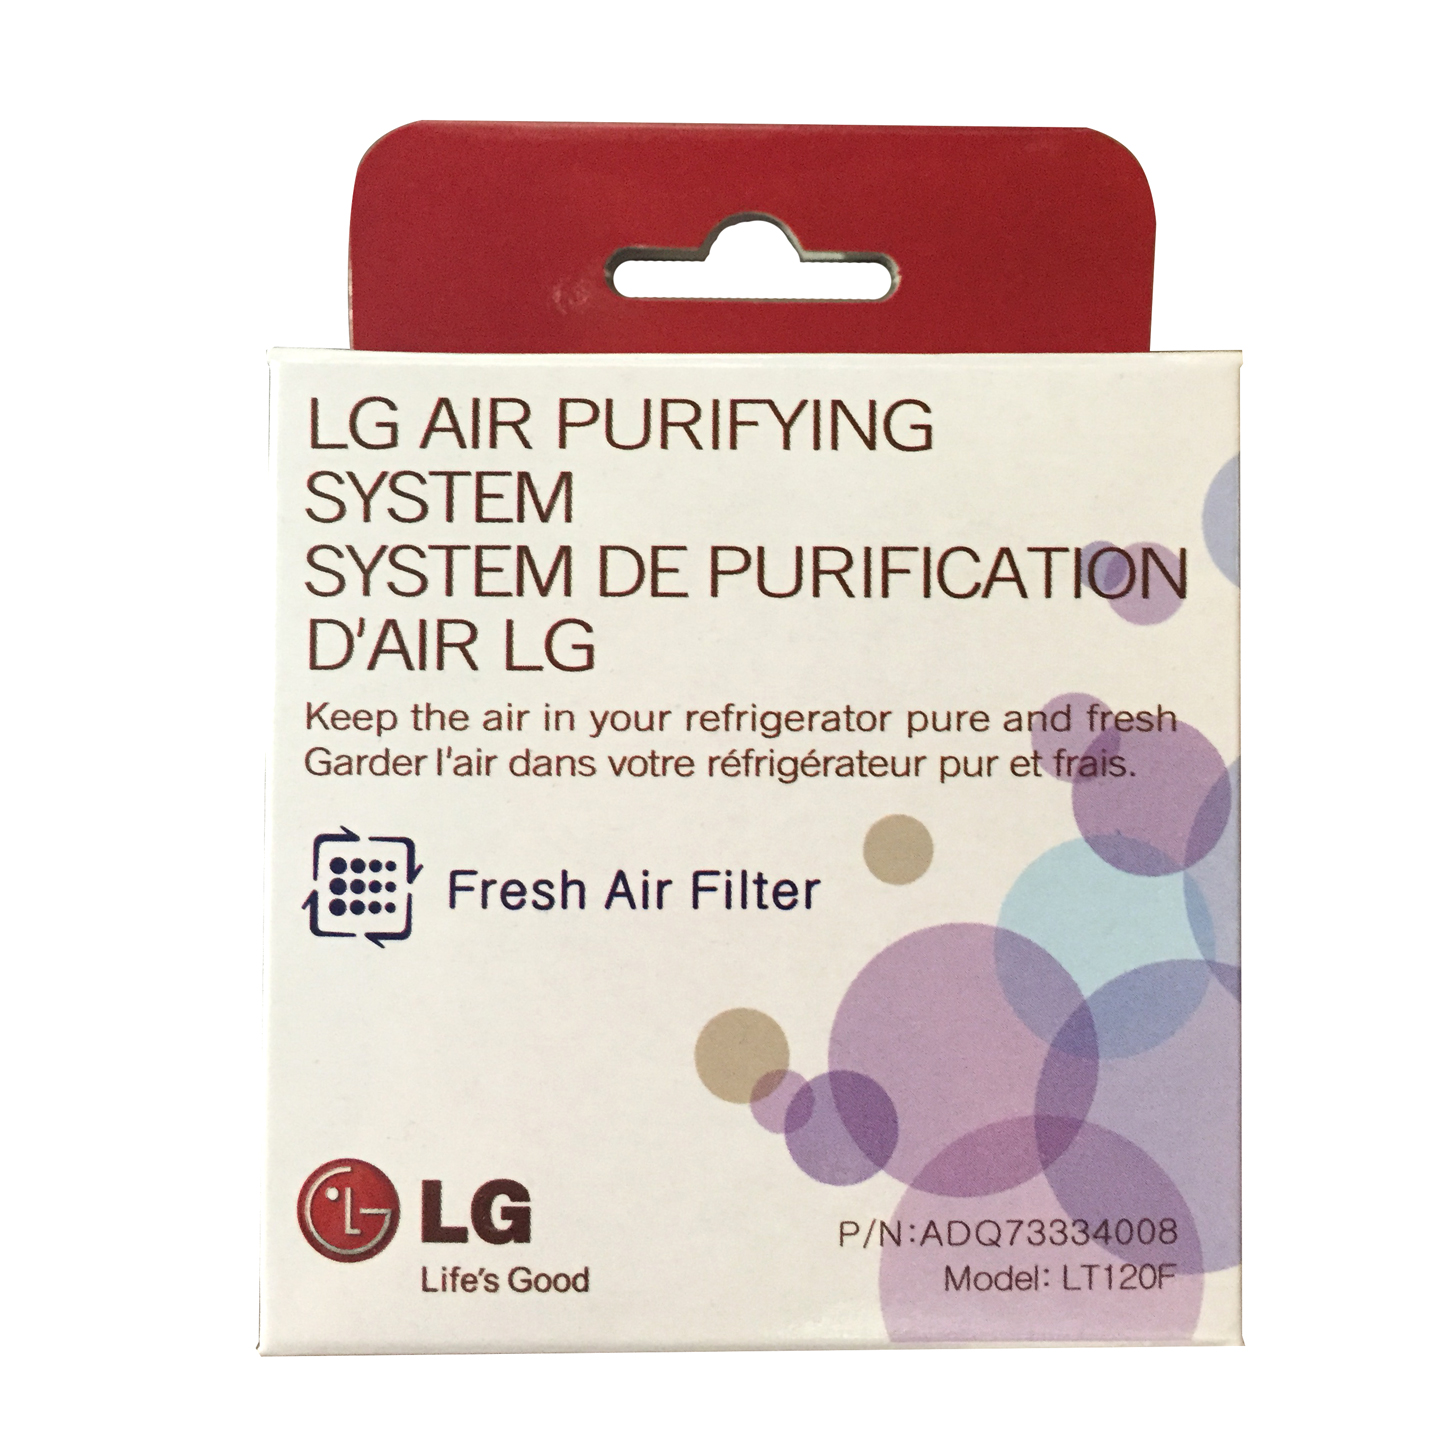 LG Fridge Air Filter, Fits LT120F Part # 9918, ADQ73334008 & ADQ73214404 278284348